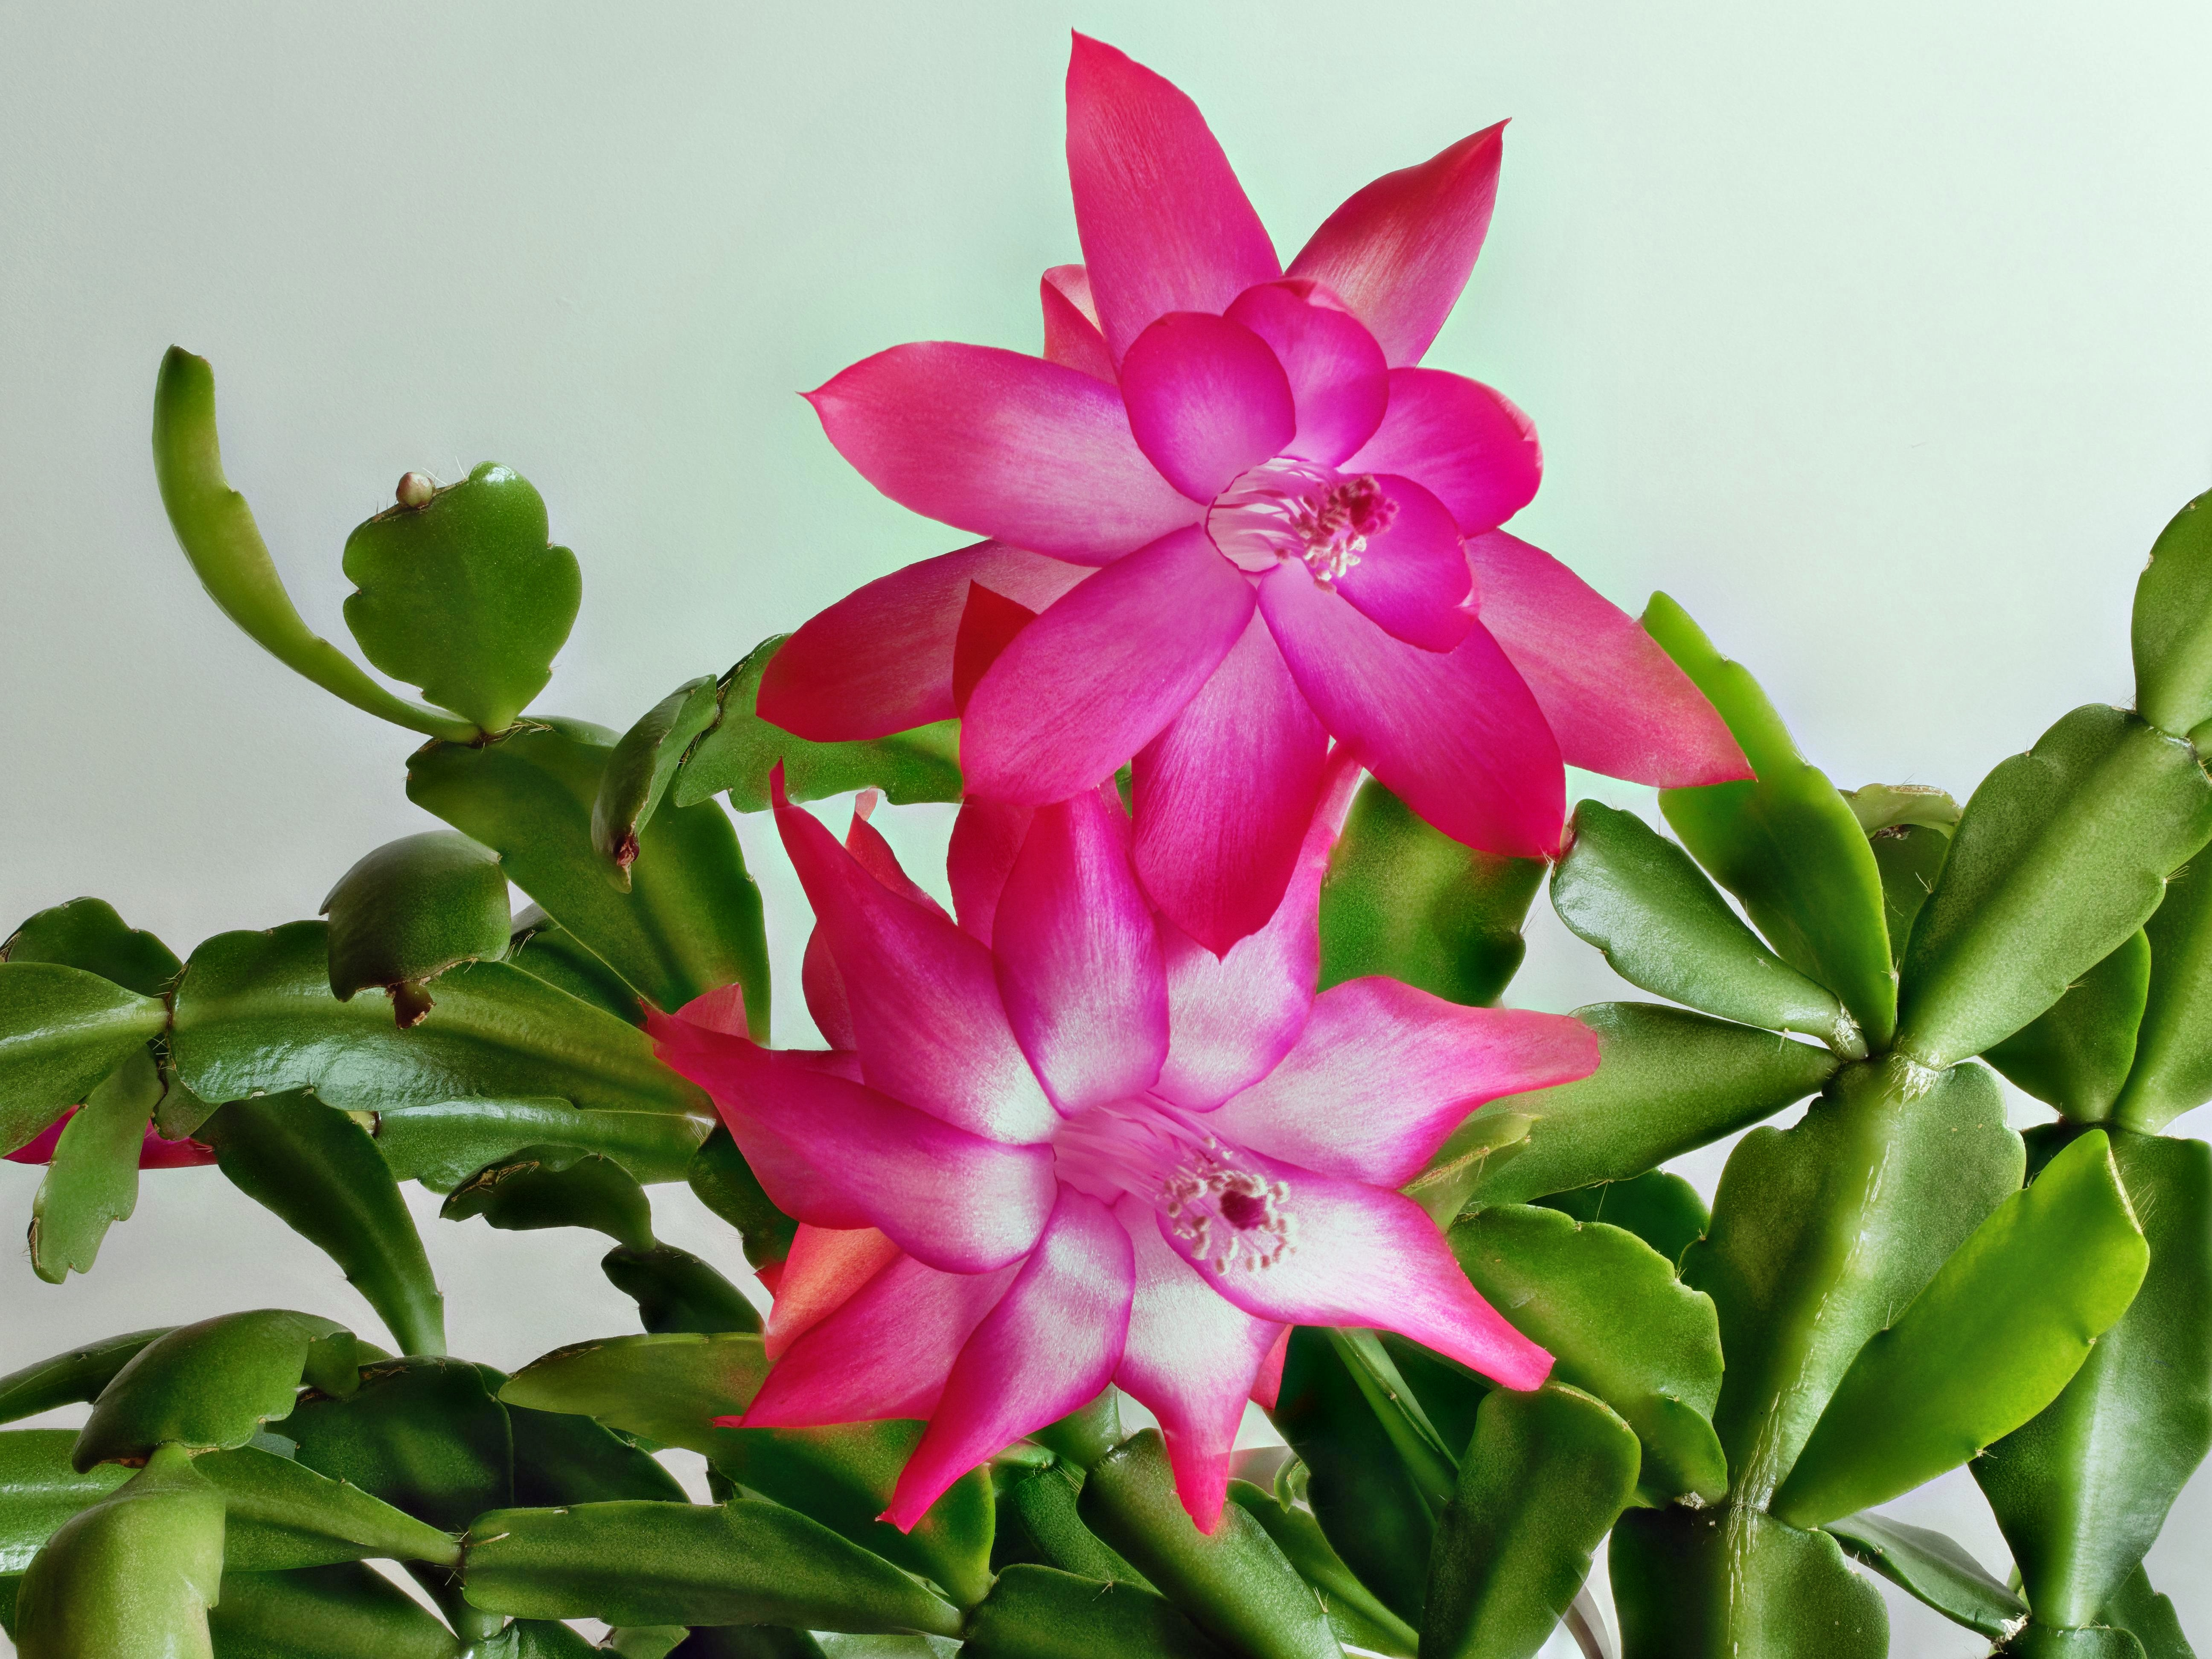 This should be Schlumbergera-1-PMax.jpeg.  Is it missing?